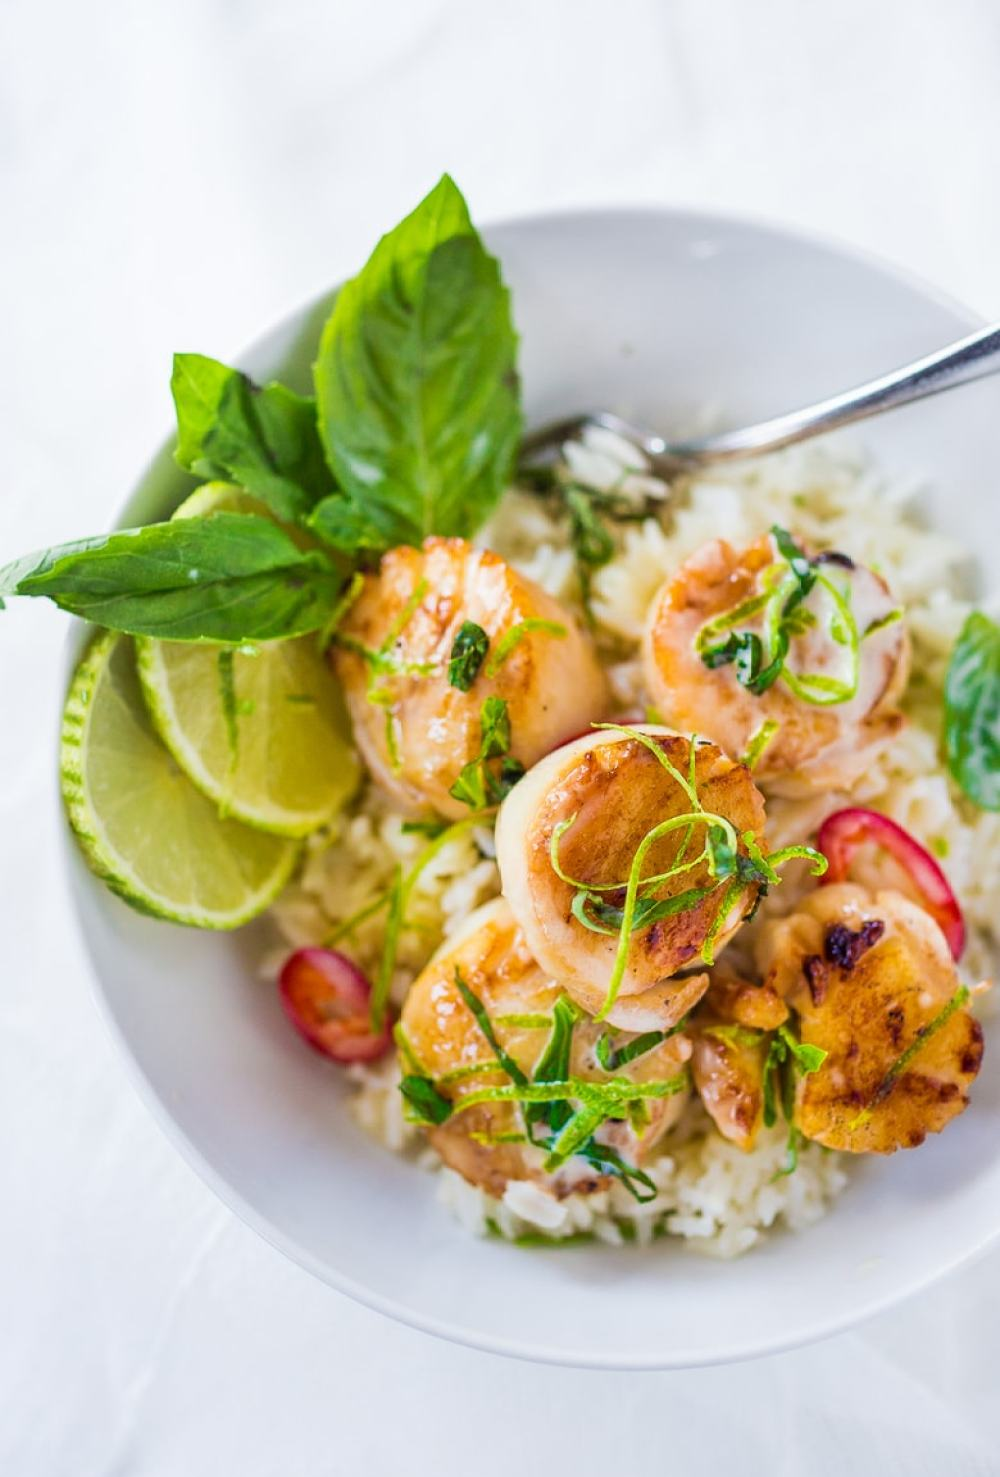 Seared Scallops with Coconut Lemongrass Sauce